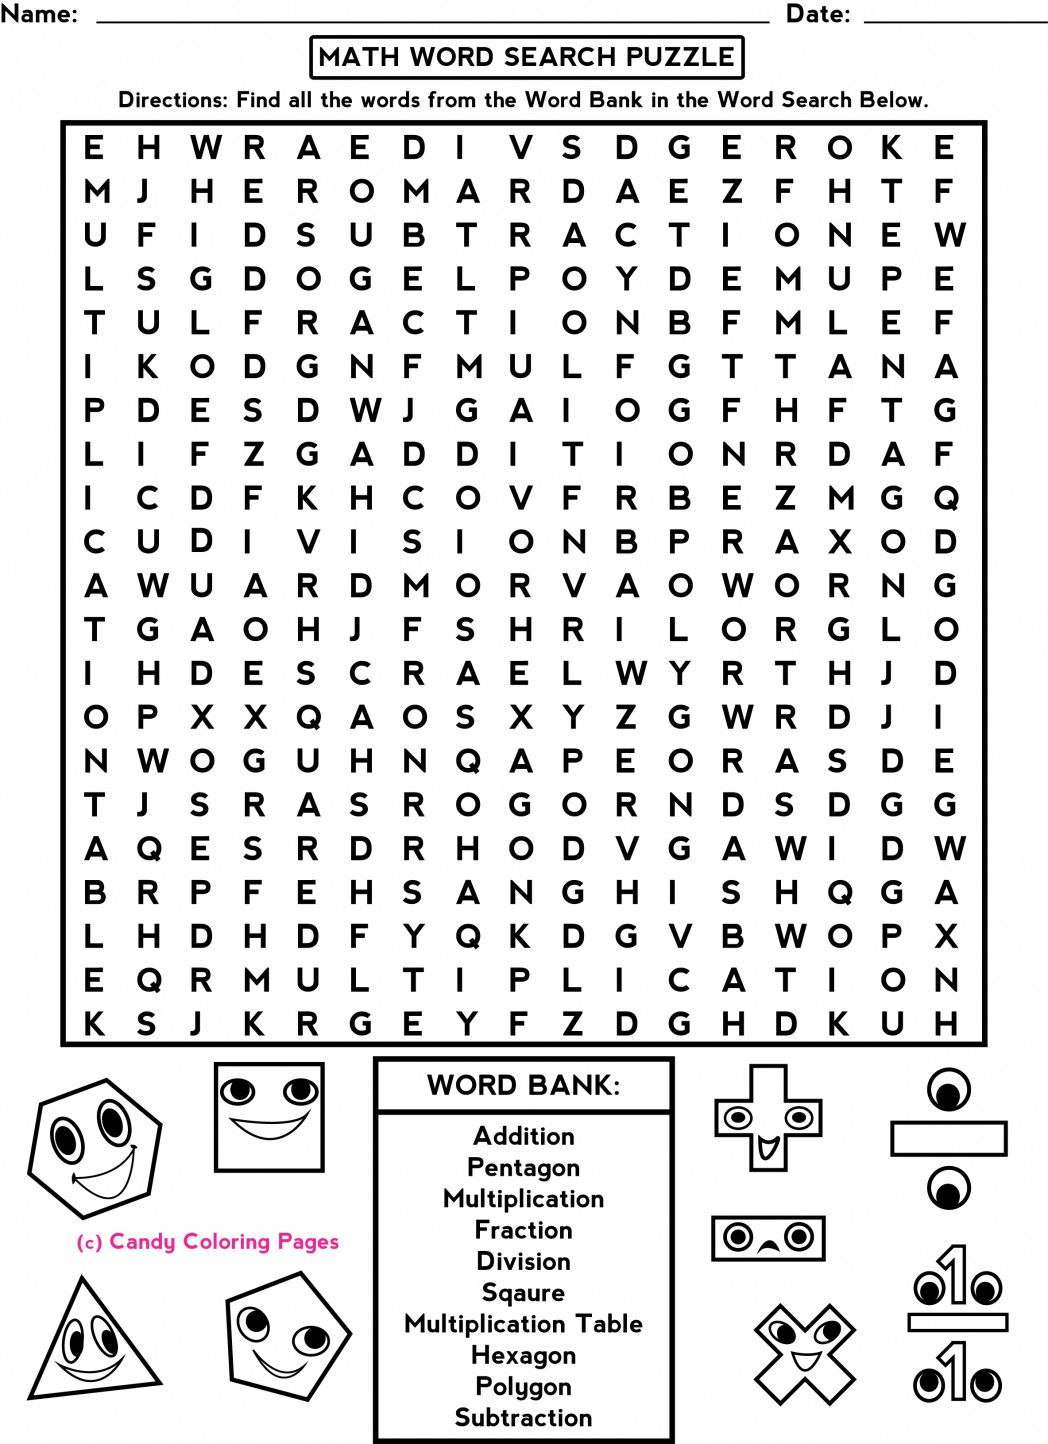 4 Fun Math Worksheets For Middle School In 2020 Fun Math Worksheets Math Worksheets Free Printable Math Worksheets